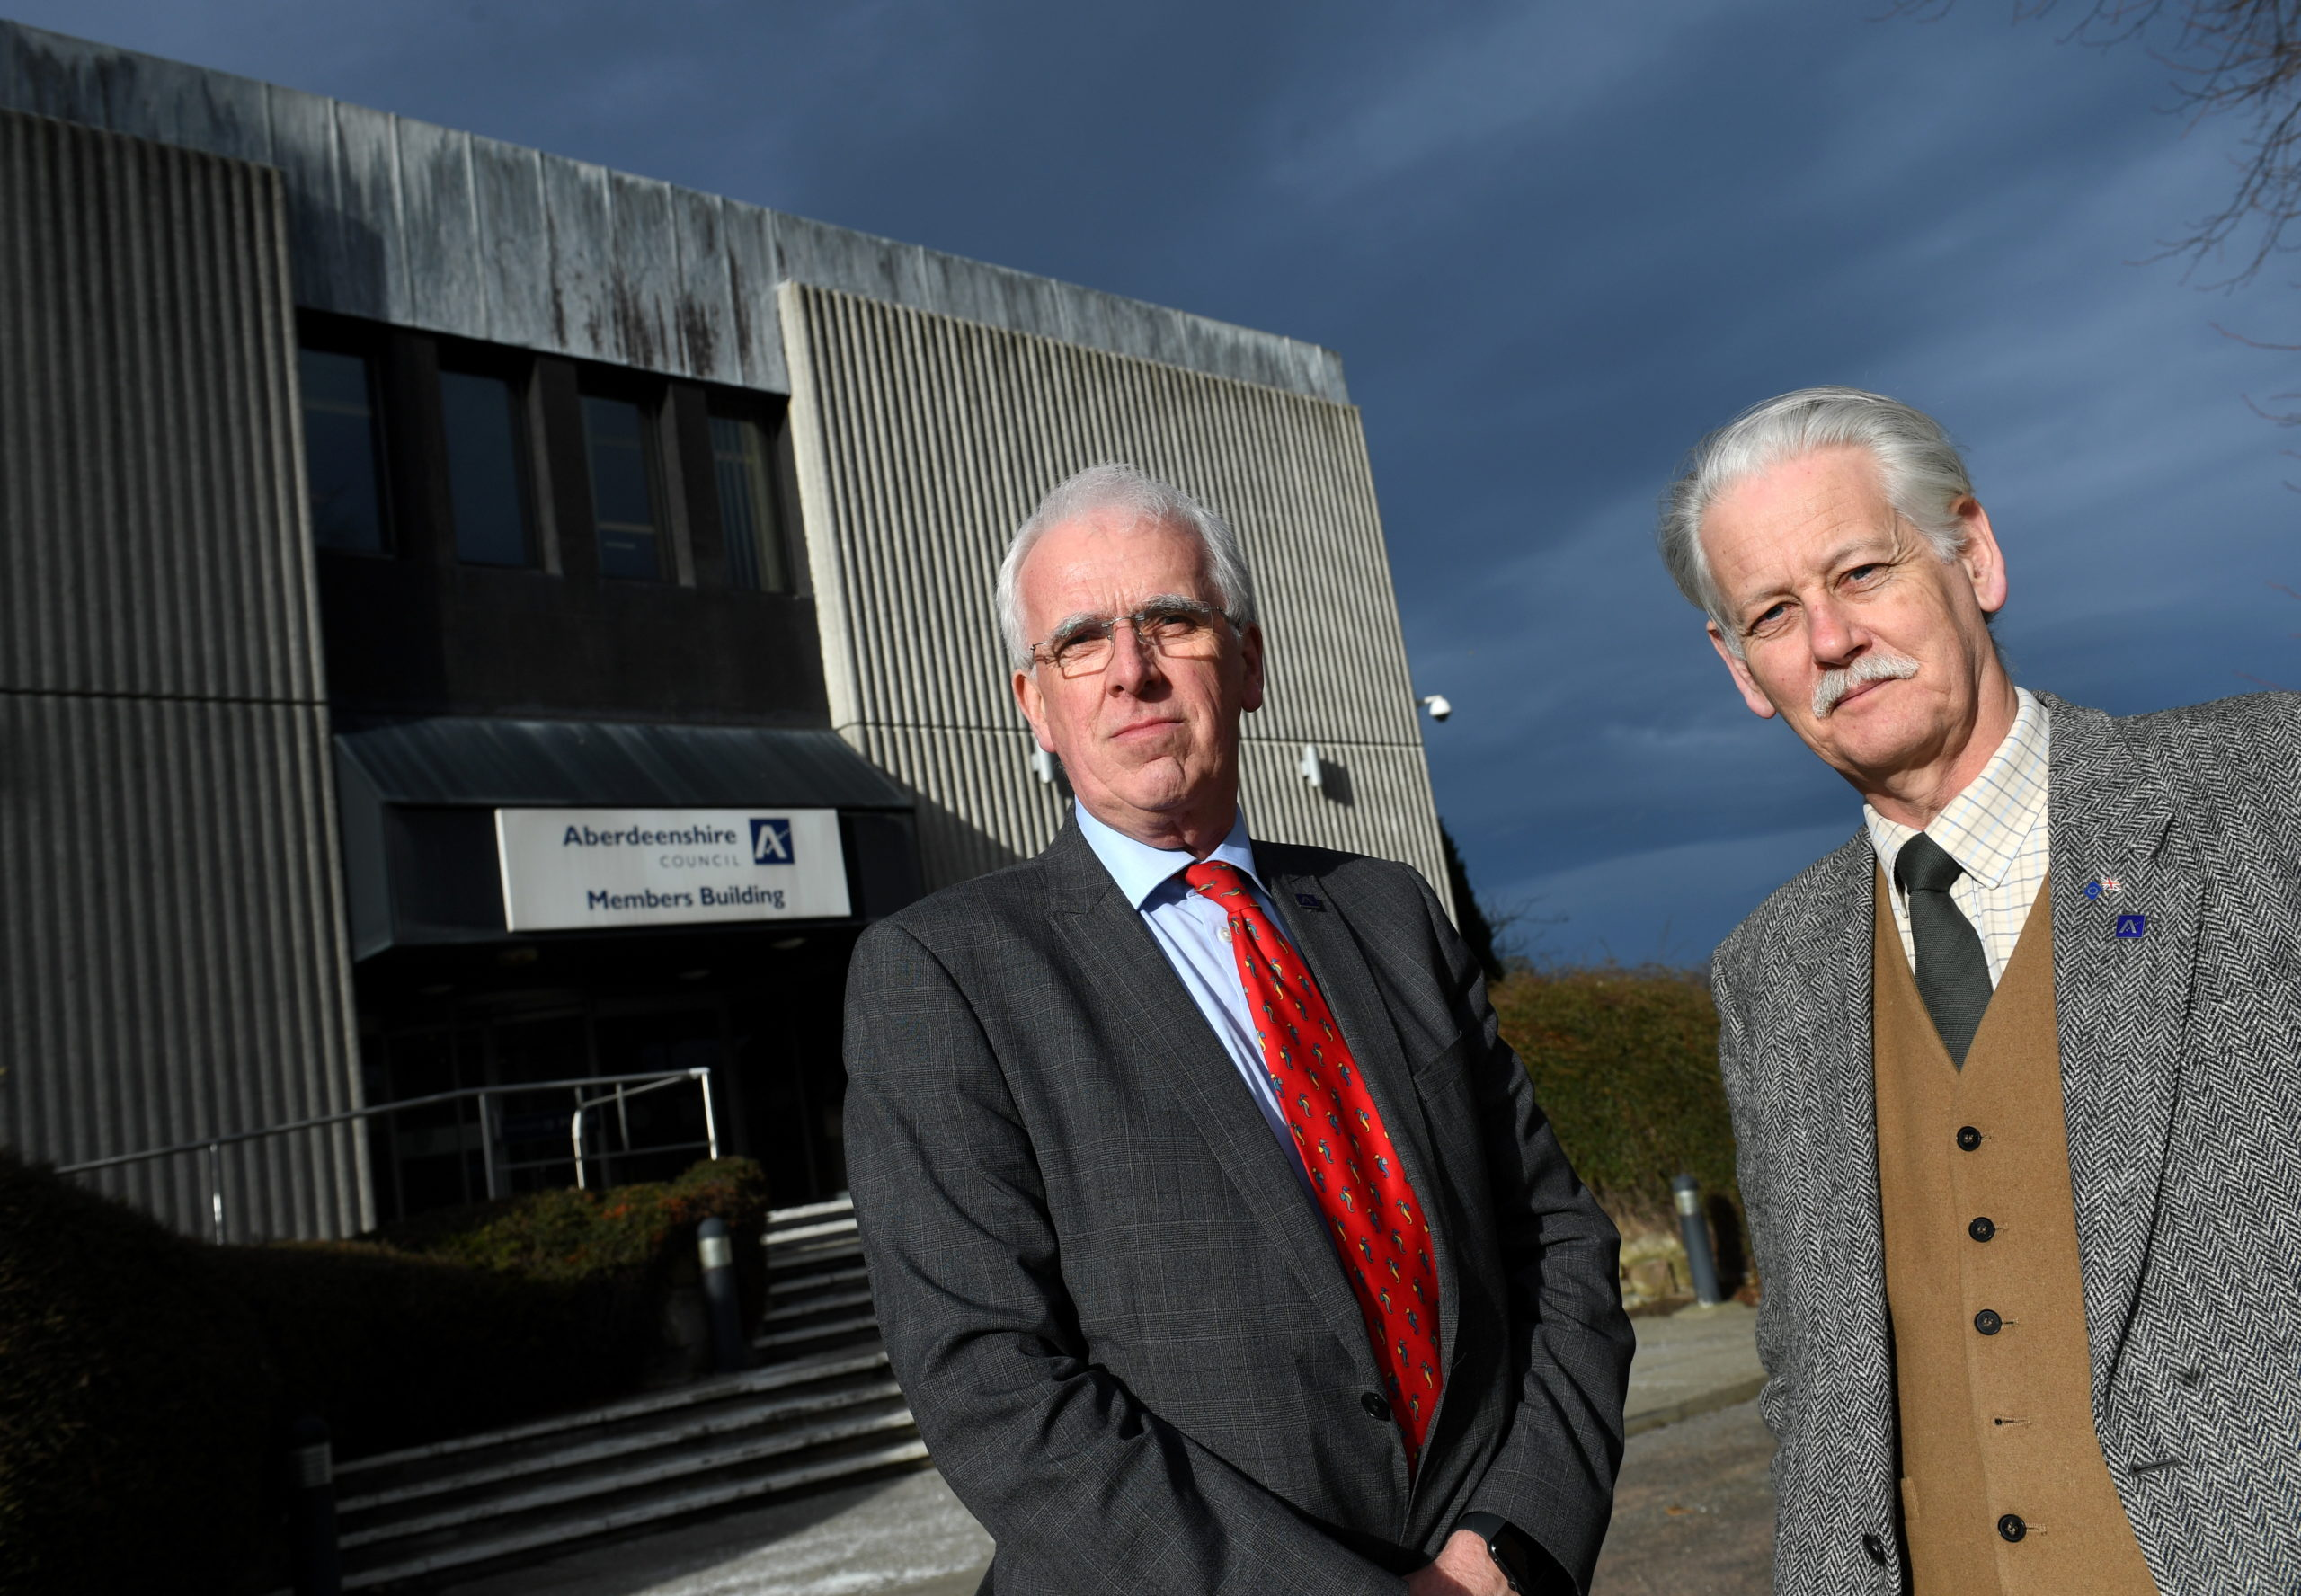 Aberdeenshire Council leader Jim Gifford, left, and deputy leader Peter Argyle, right.